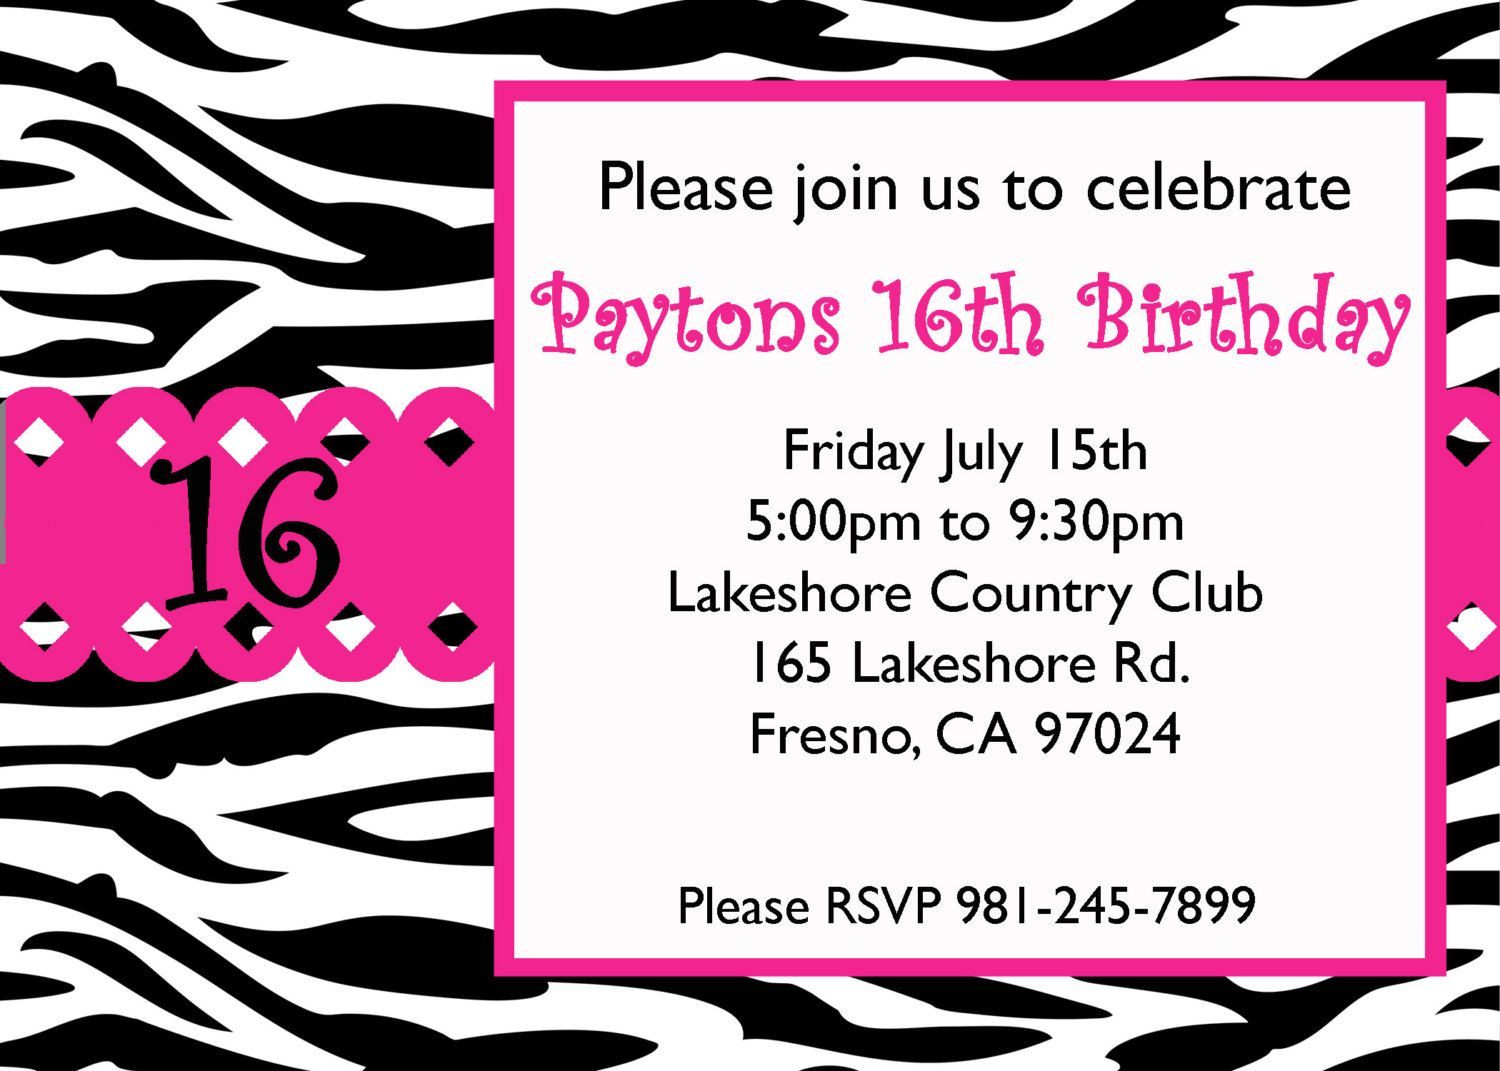 Free Sweet 16 Birthday Invitation Templates | Birthday Ideas - Free Printable Sweet 16 Birthday Party Invitations